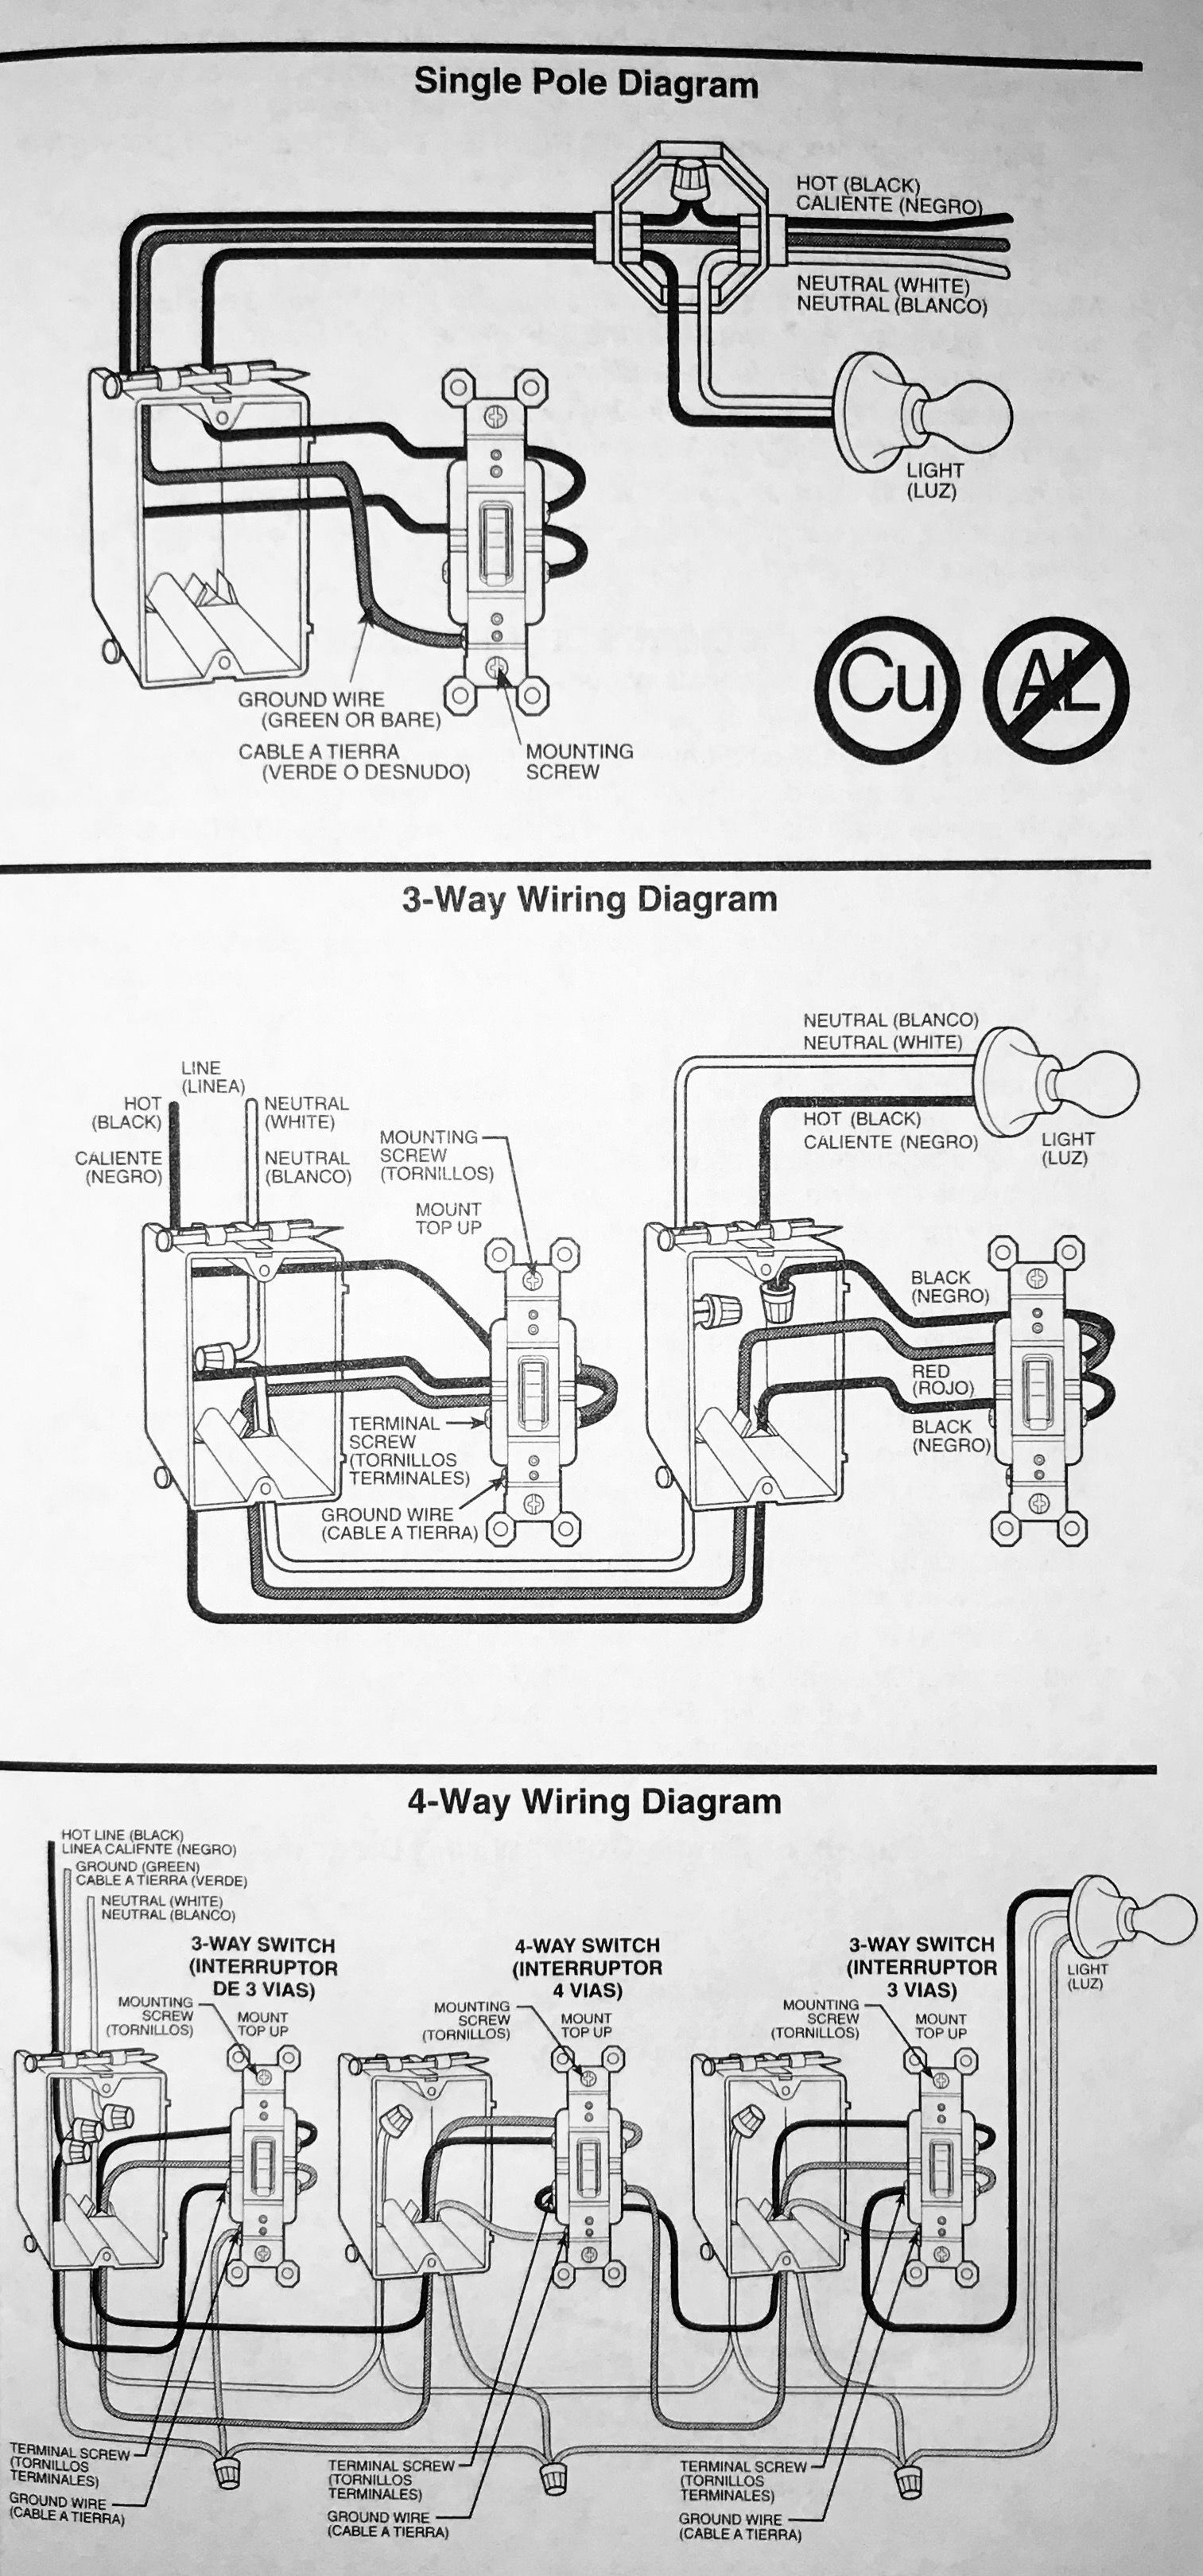 Unique Wiring Diagram For Single Pole Light Switch